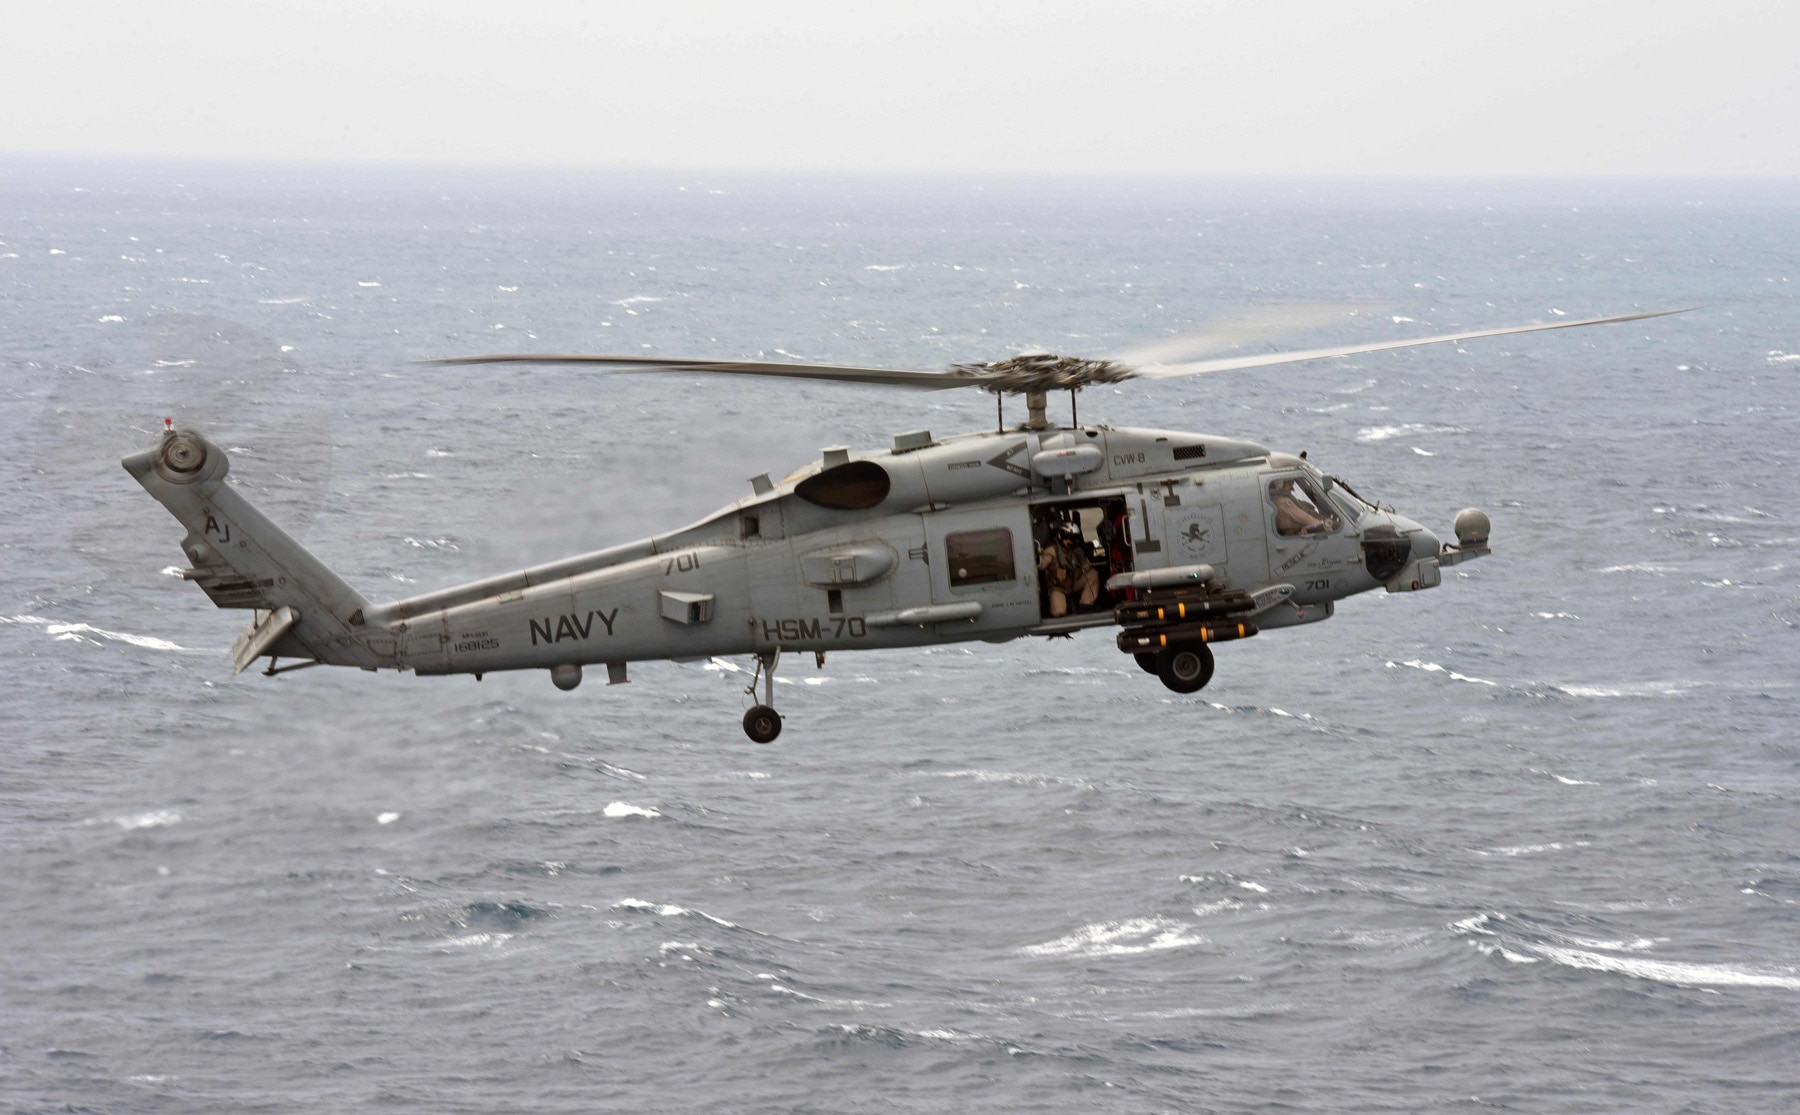 Resultado de imagen para seahawk helicopter crashes in the pacific, crew recovered safely